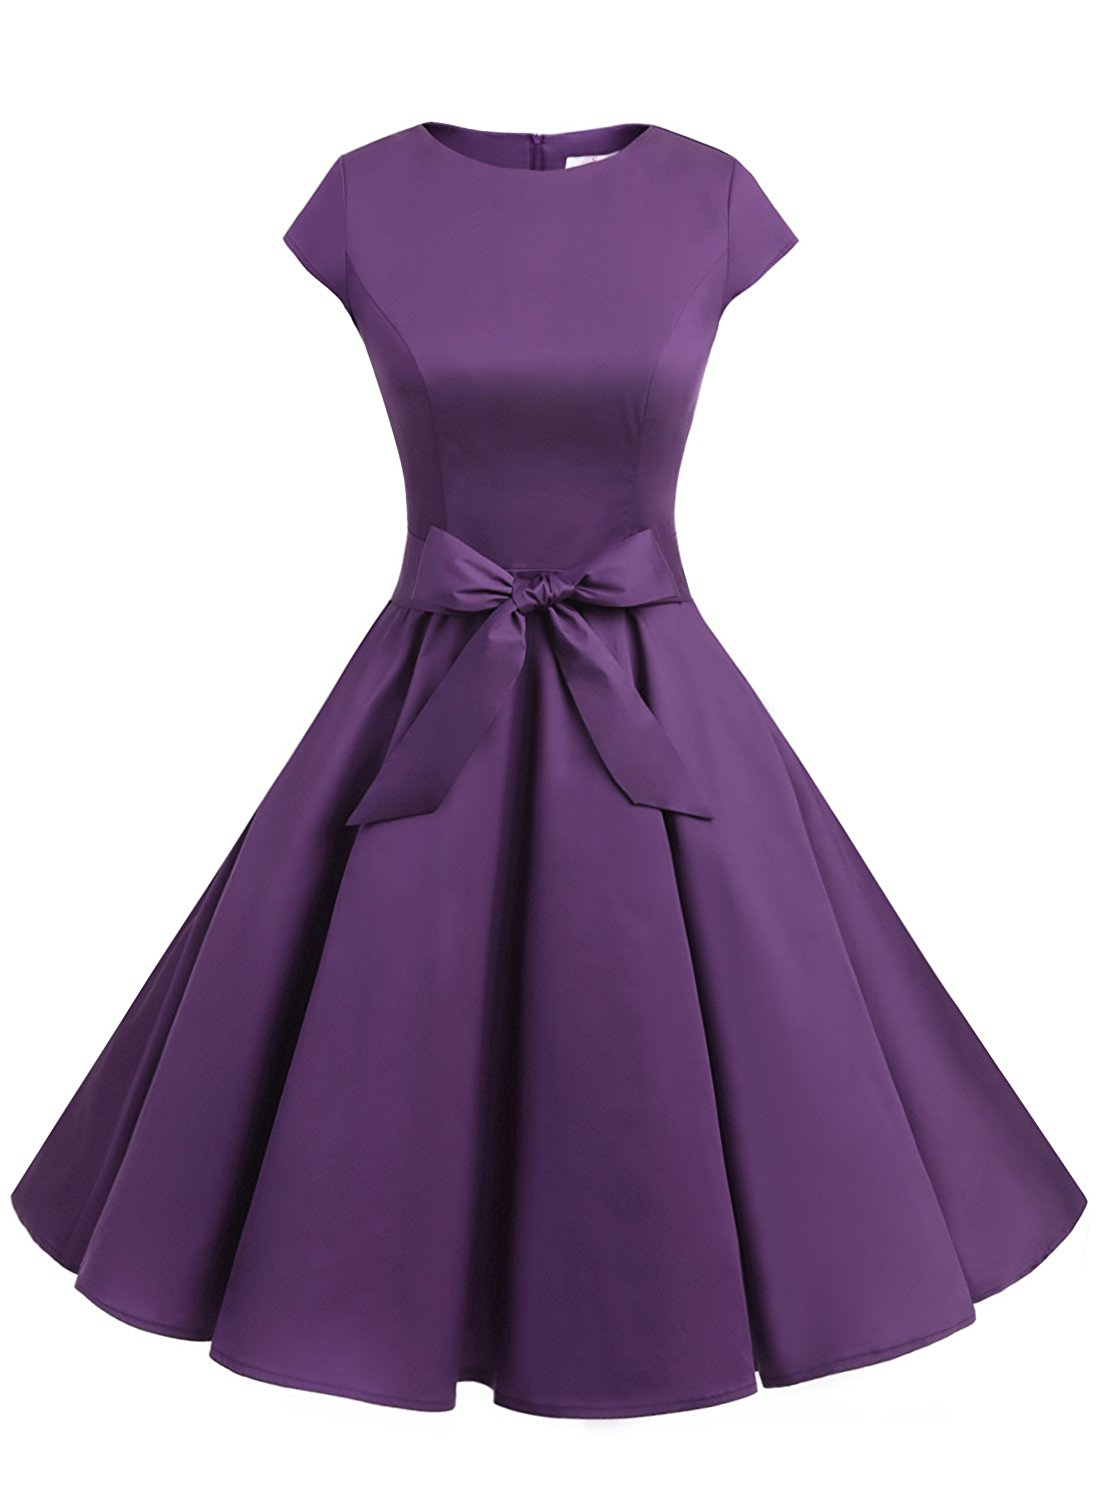 e1ef364e443e 50s Rockabilly Style Cap Sleeves Purple Retro Swing Dress With Bowknot